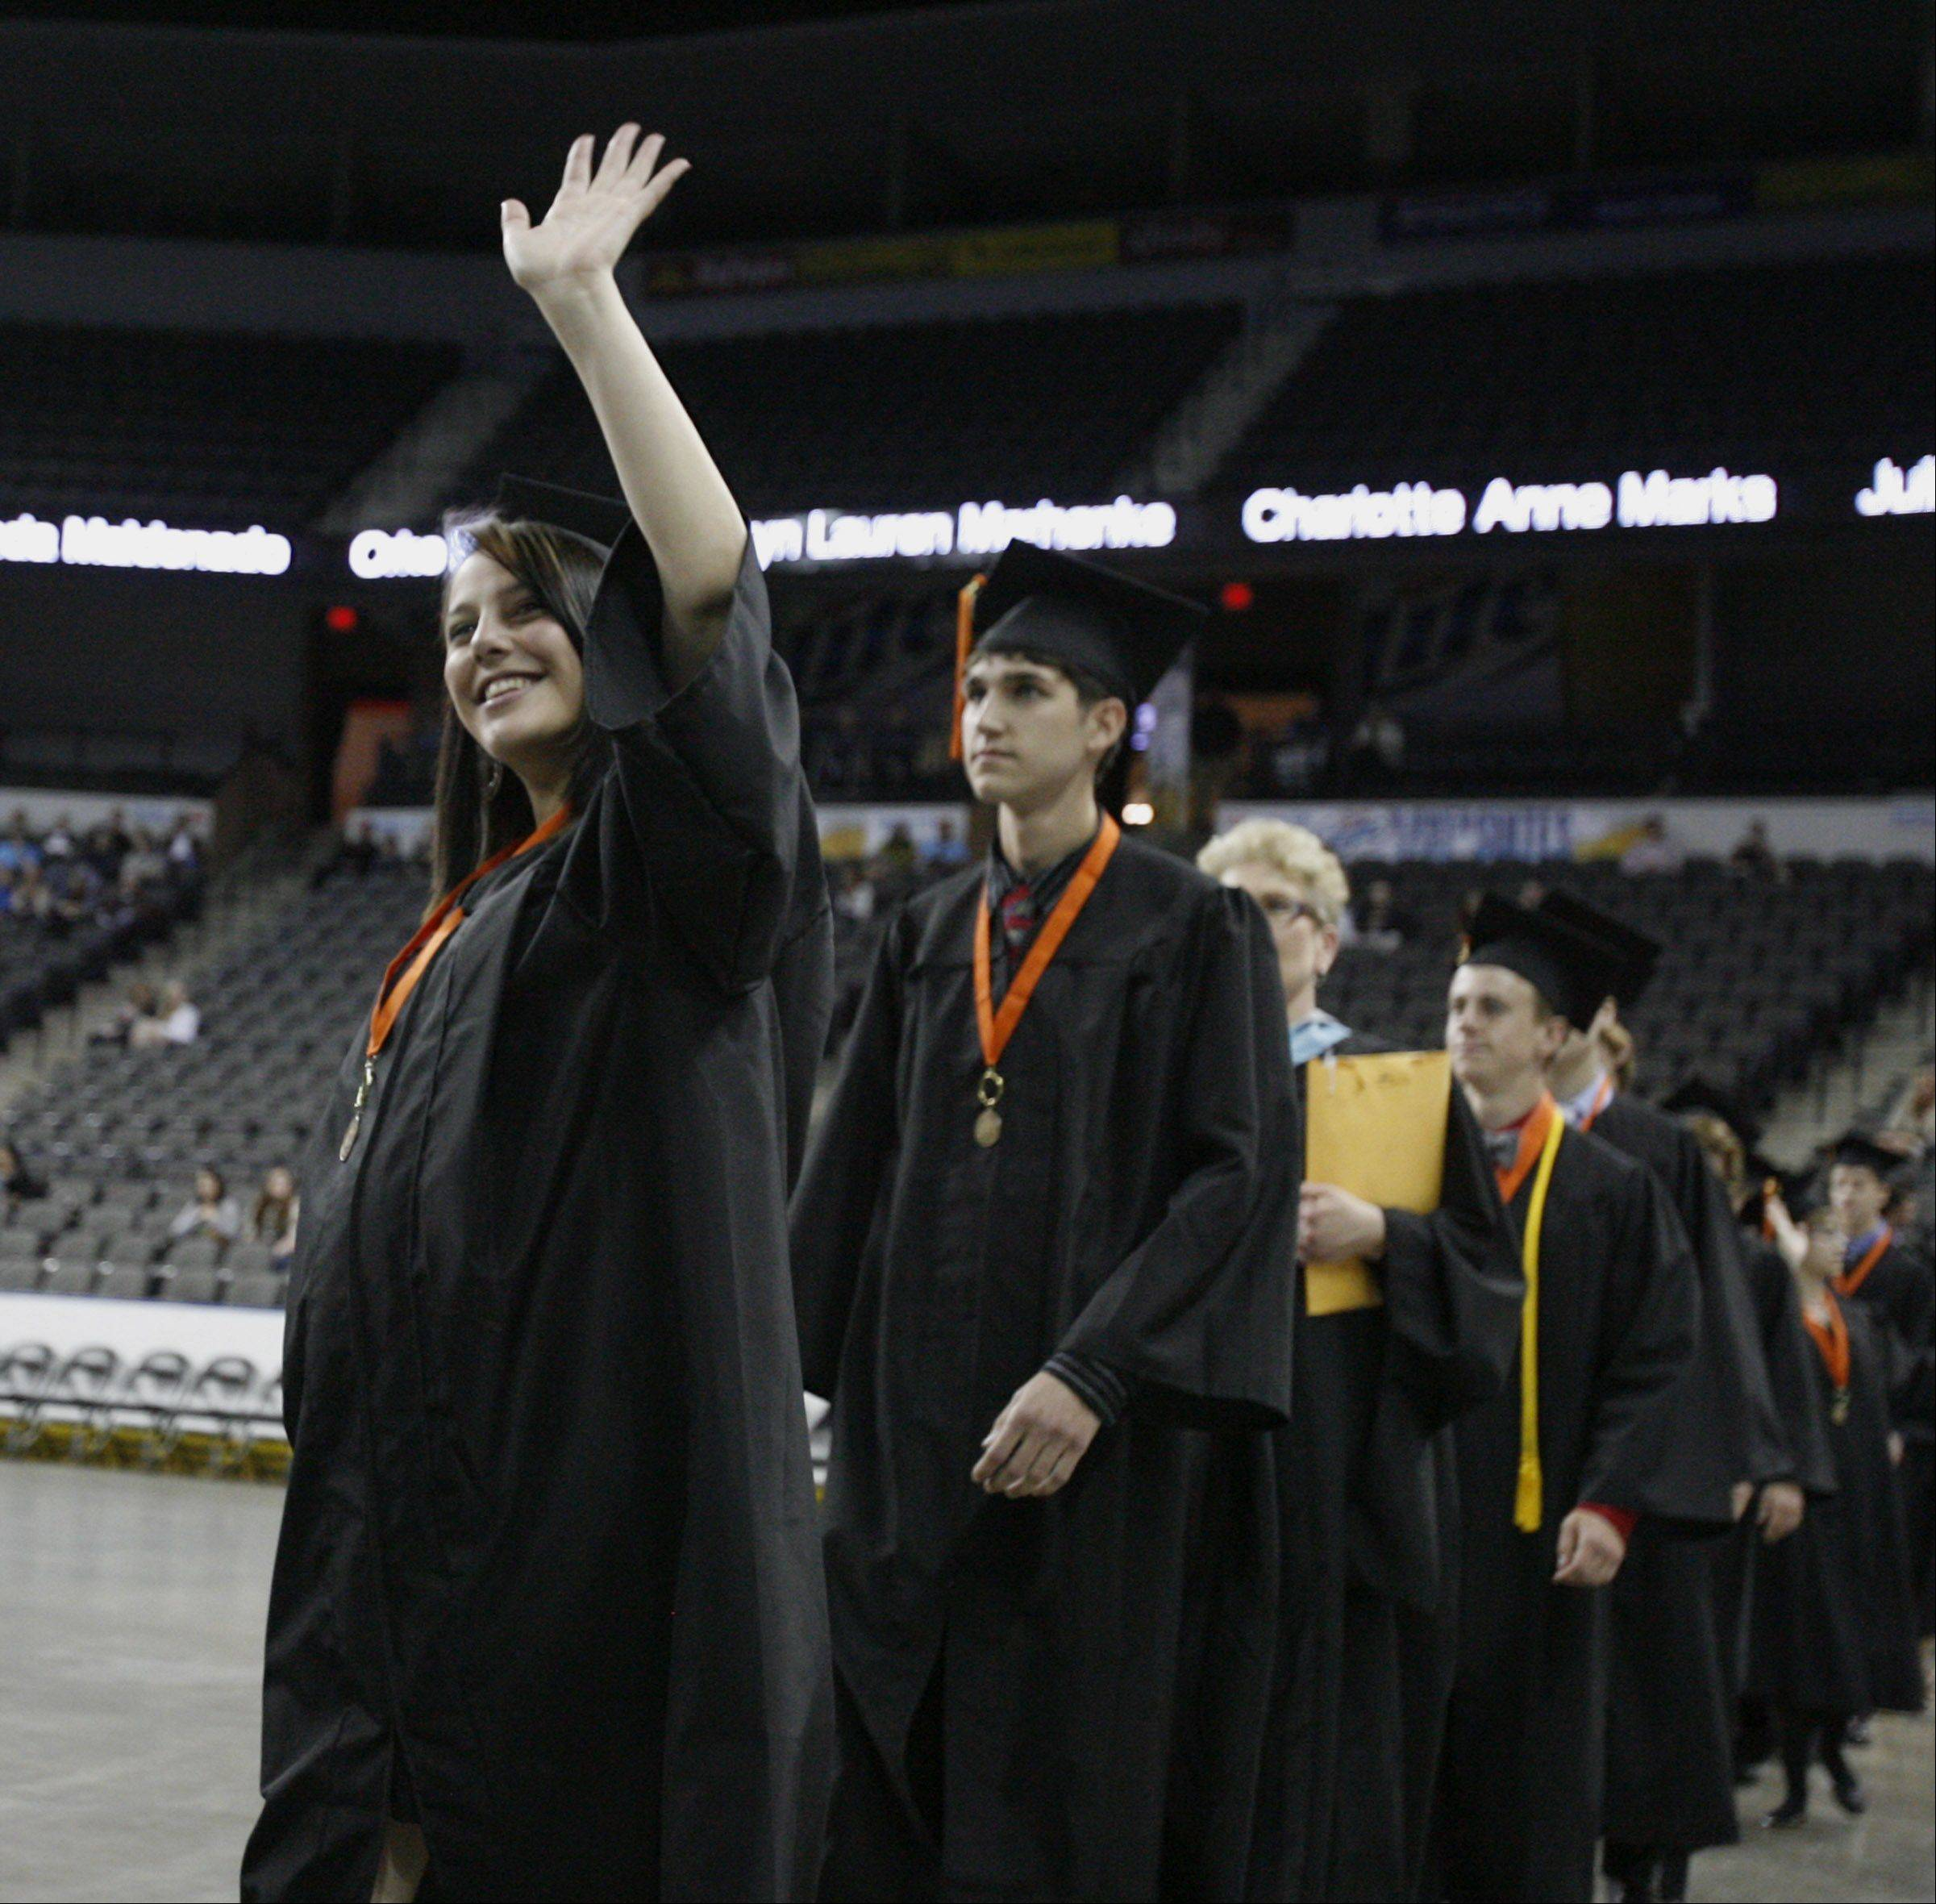 Sydney Hancock waves to friends while walking into Libertyville High School graduation ceremony on Friday, June 1 at the Sears Centre in Hoffman Estates.